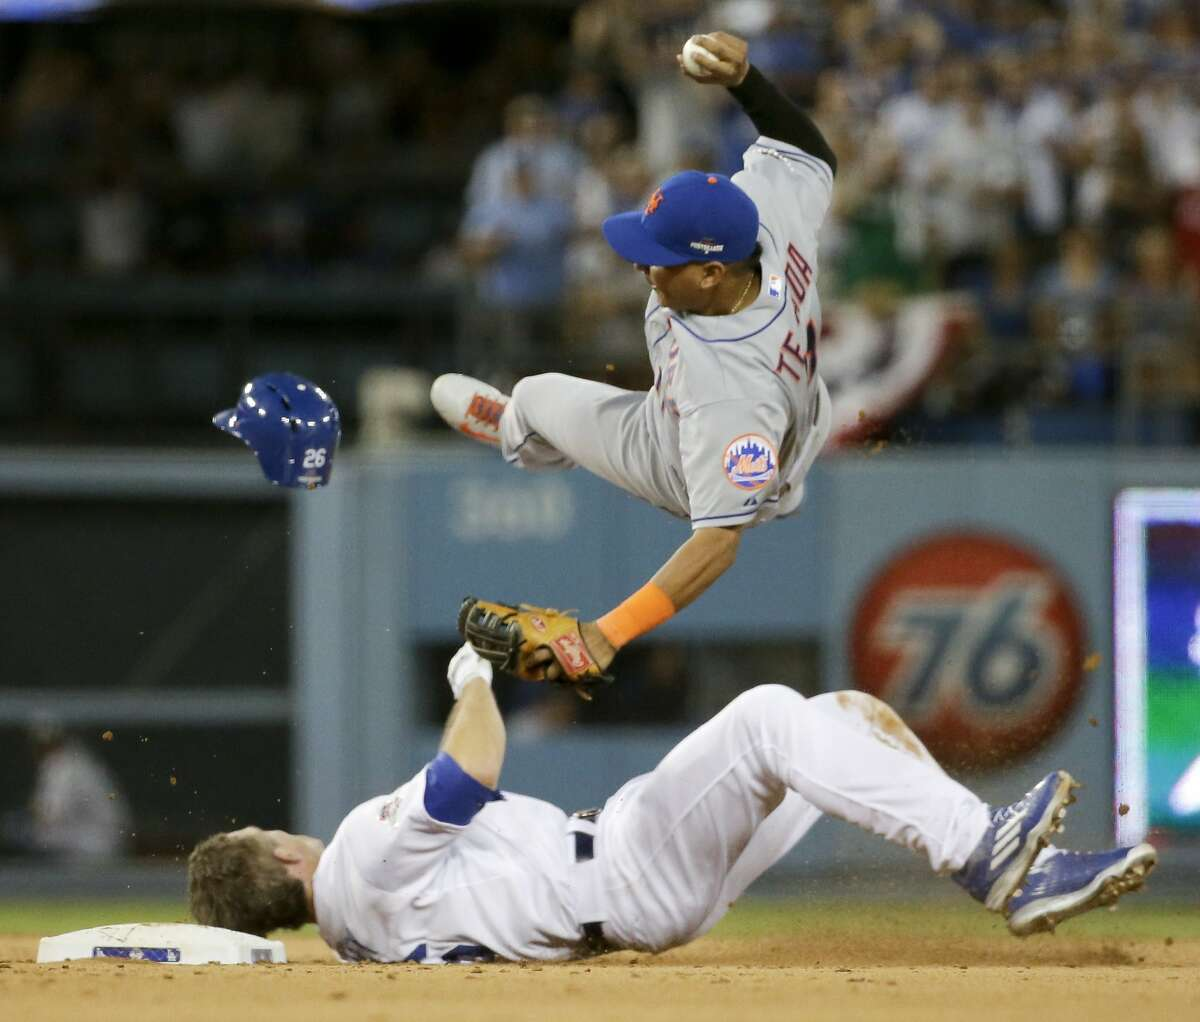 """FILE - In this Oct. 10, 2015, file photo, New York Mets shortstop Ruben Tejada, goes over the top of Los Angeles Dodgers' Chase Utley who broke up a double play during the seventh inning in Game 2 of baseball's National League Division Series, in Los Angeles. Major League Baseball and the players' association have banned rolling block slides to break up potential double plays, hoping to prevent a repeat of the takeout by Dodgers' Chase Utley that broke a leg of Mets Ruben Tejada in last year's playoffs. Under the rules change announced Thursday, Feb. 25, 2016, a runner must make a """"bona fide slide,"""" defined as making contact with the ground ahead of the base, being in position to reach the base with a hand or foot and to remain on it, and sliding within reach of the base without changing his path to initiate contact with a fielder. (AP Photo/Gregory Bull, File)"""